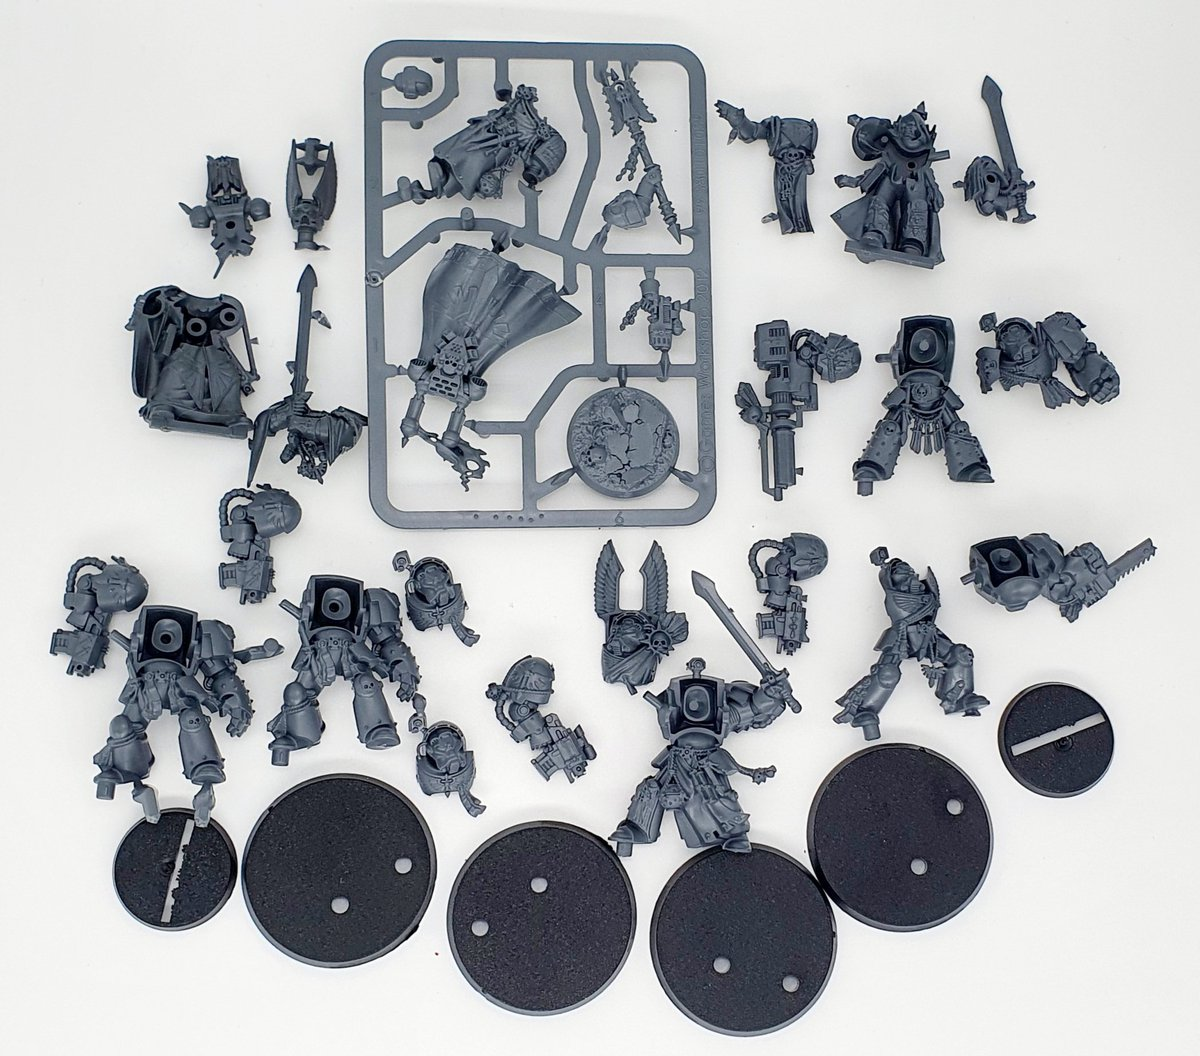 SURPRISE GIVEAWAY!!! Figured I would give back to this amazing Community! 💜💜💜 Dark Angels Units! RETWEET & COMMENT to enter! Ends 26th September! Open Worldwide! 💜💜💜 Love you all!  #WarhammerCommunity #warhammer40k #New40K #warhammer40000 #warmongers #warmaidens #Grimdark https://t.co/T5xg8u2gk8